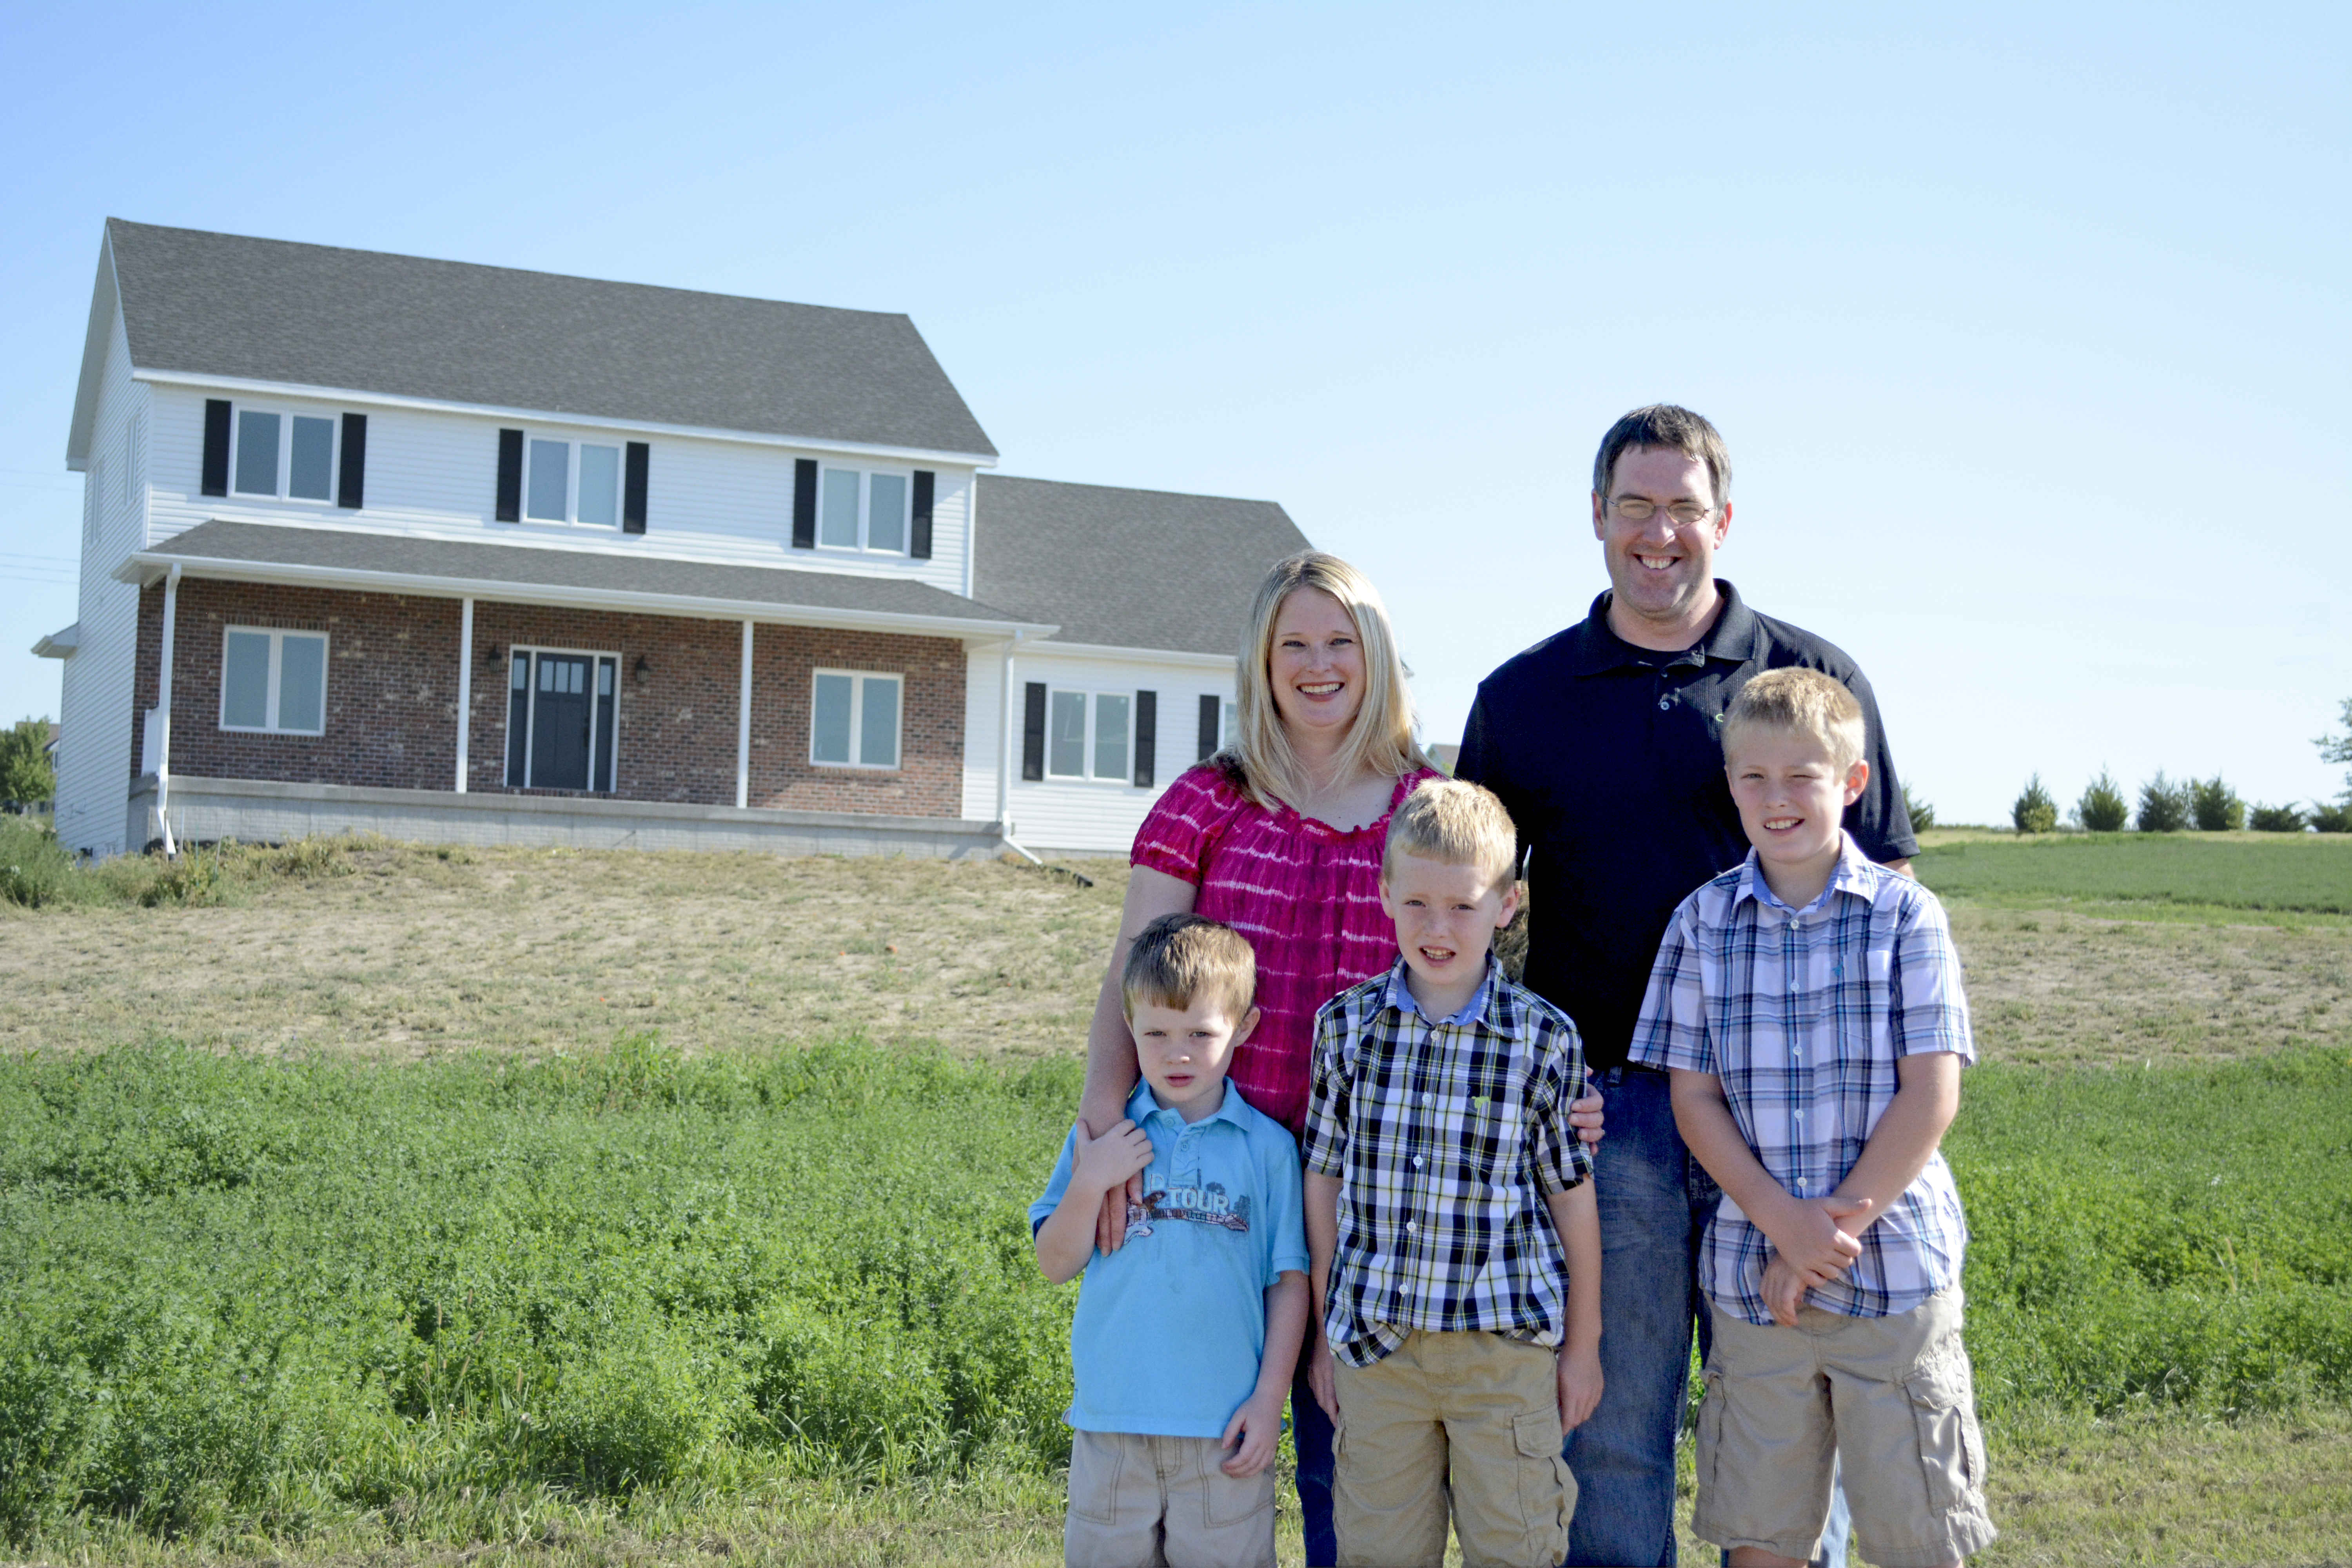 Johnson family in front of house